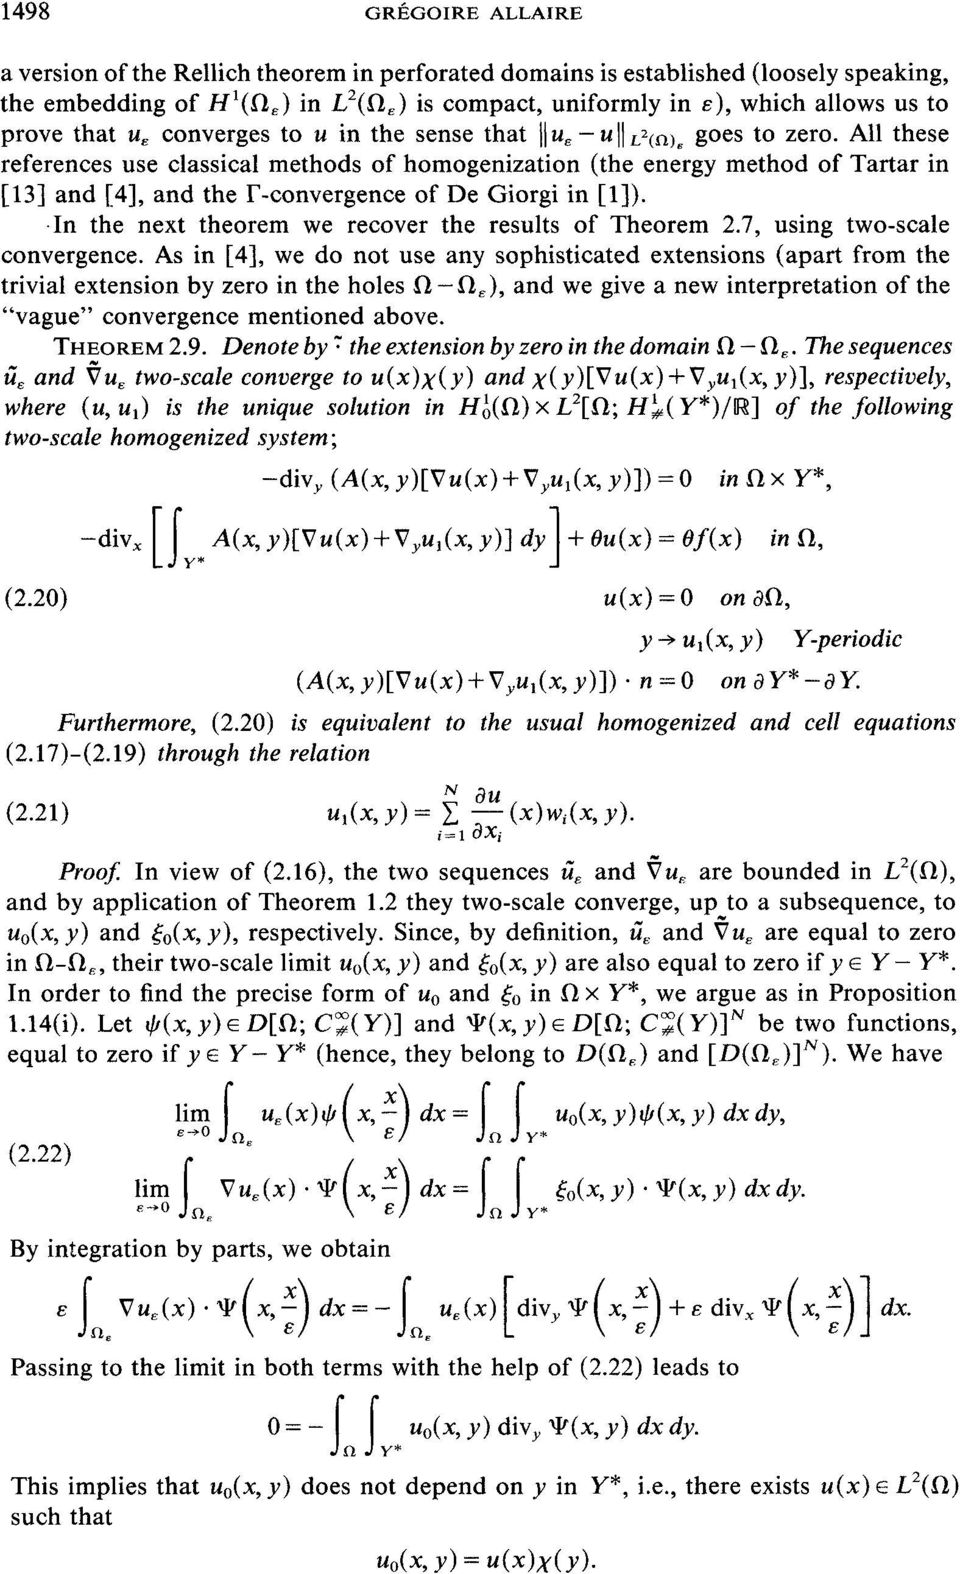 All these references use classical methods of homogenization (the energy method of Tartar in [13] and [4], and the F-convergence of De Giorgi in [1]).